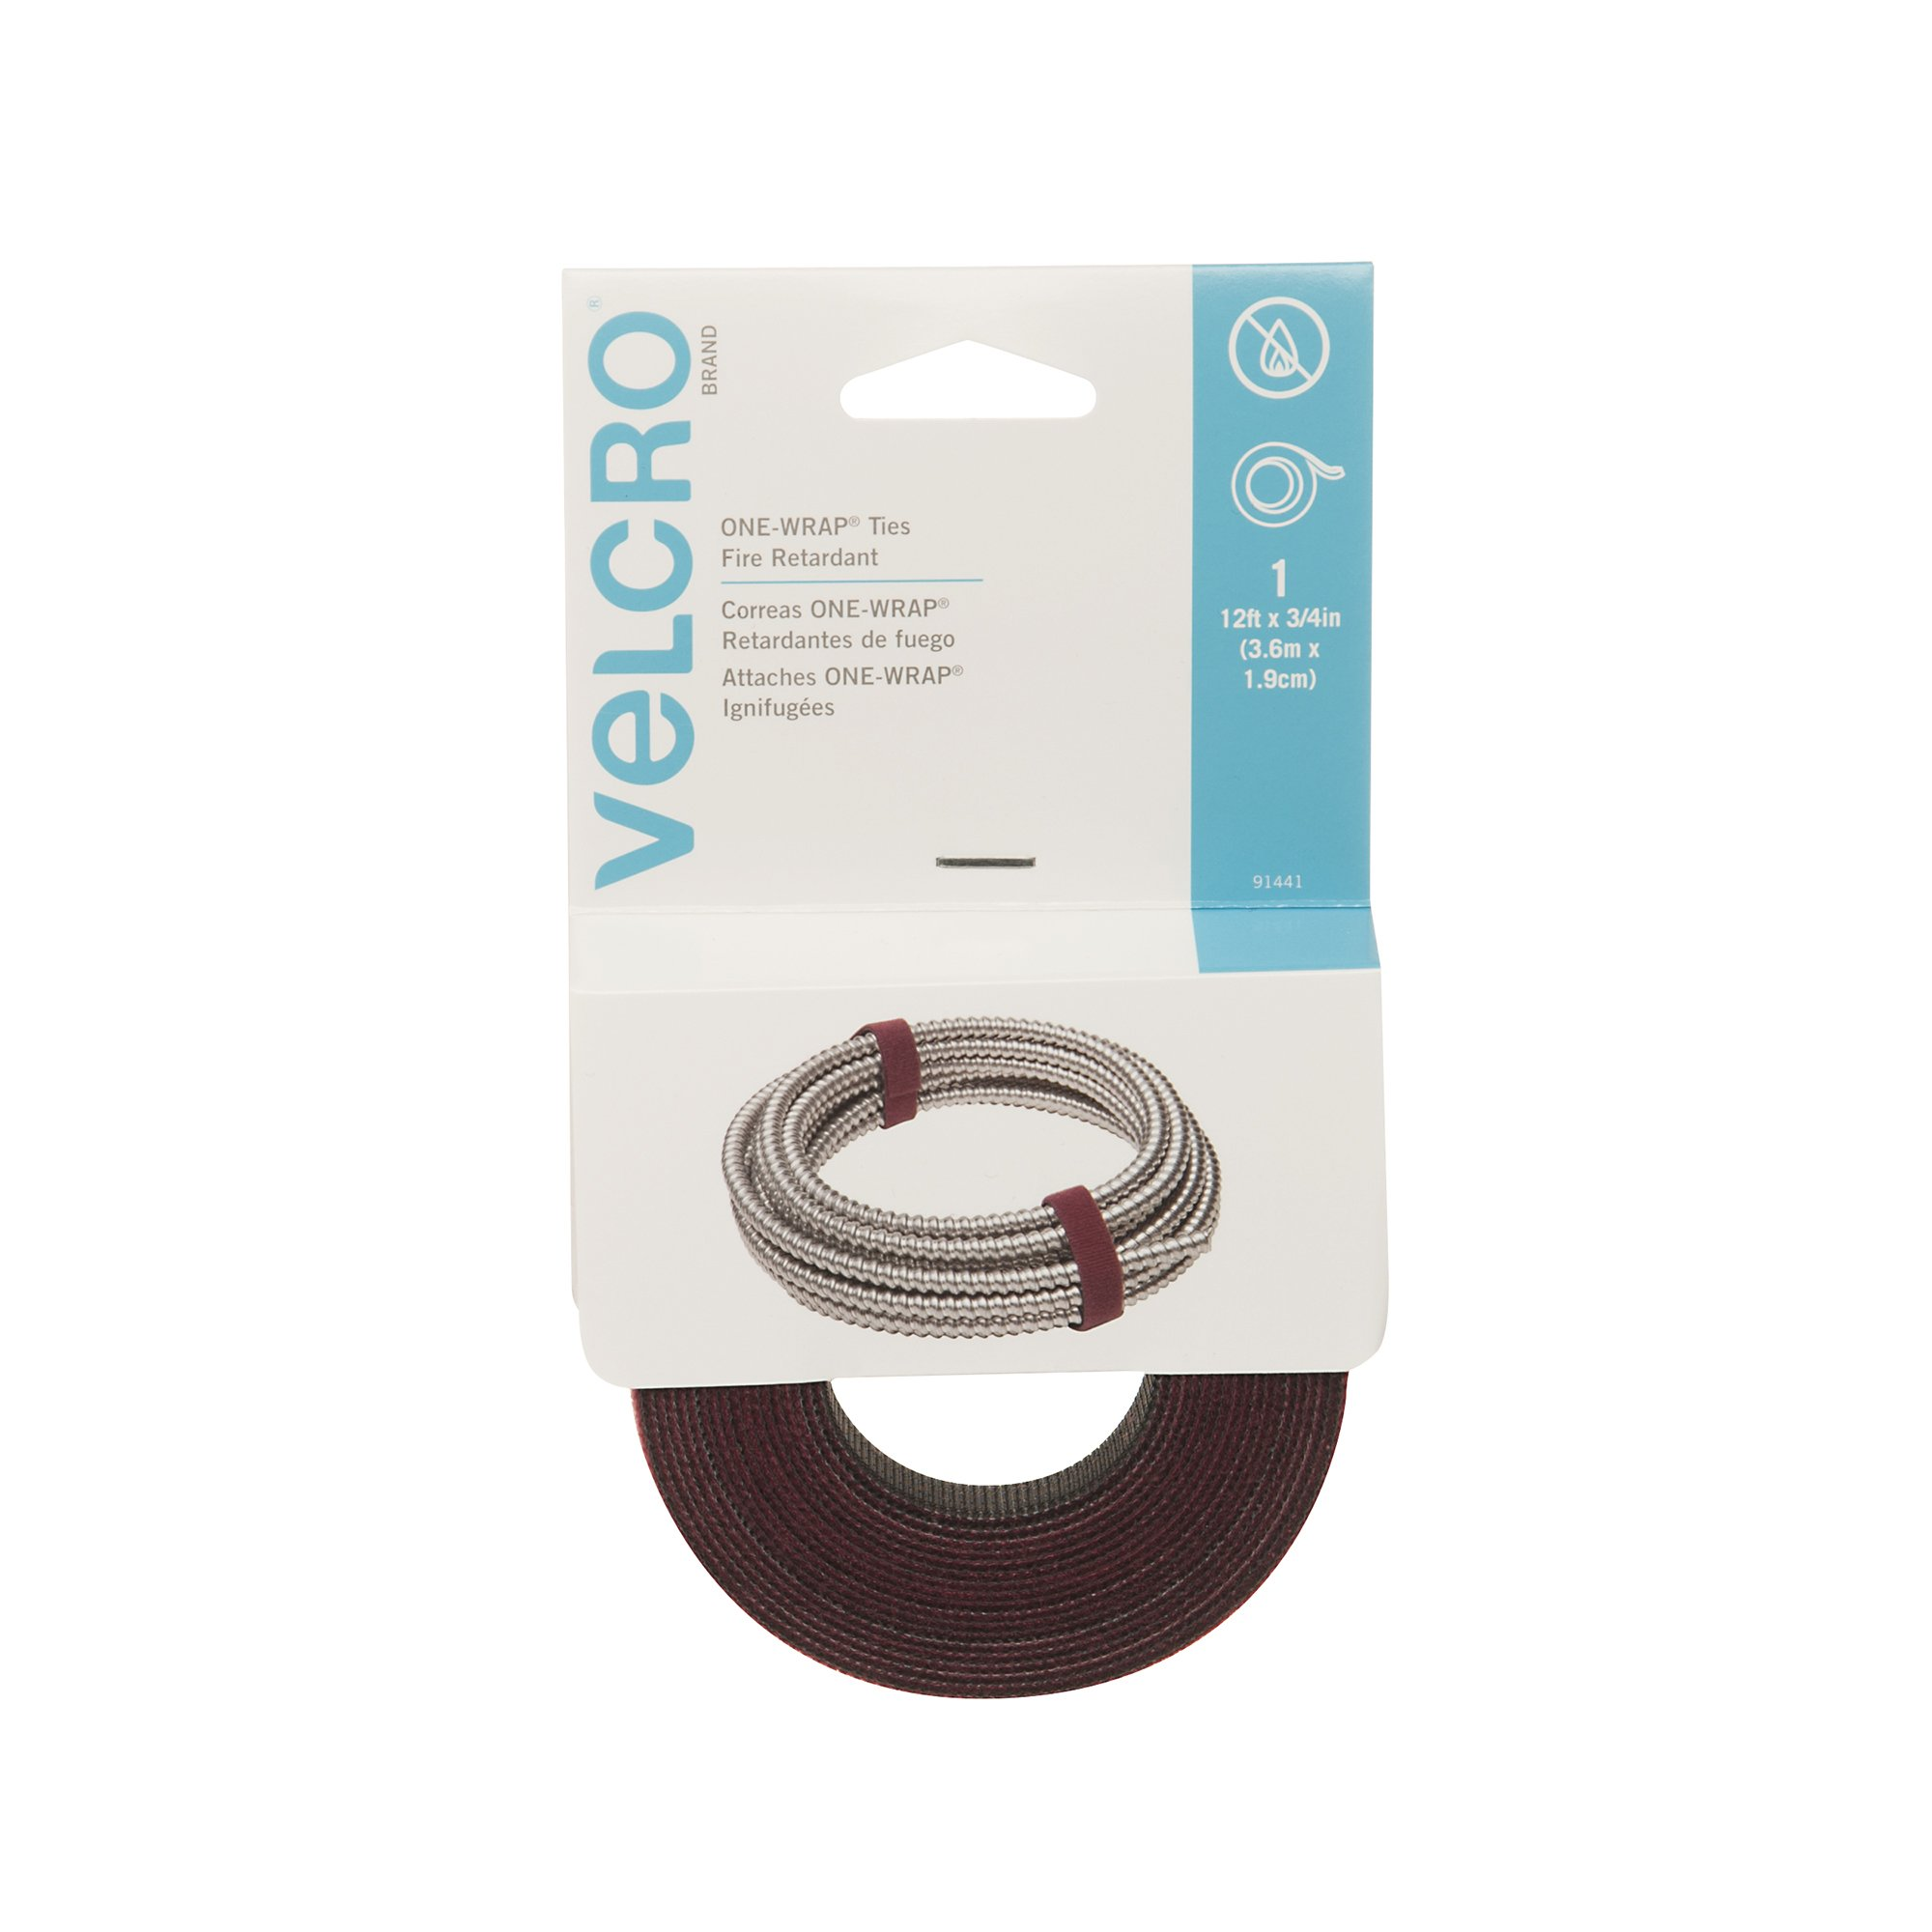 VELCRO Brand - ONE-WRAP Roll, Double-Sided, Fire Retardant, Self Gripping Multi-Purpose Hook and Loop Tape, Reusable, 12' x 3/4'' Roll - Cranberry